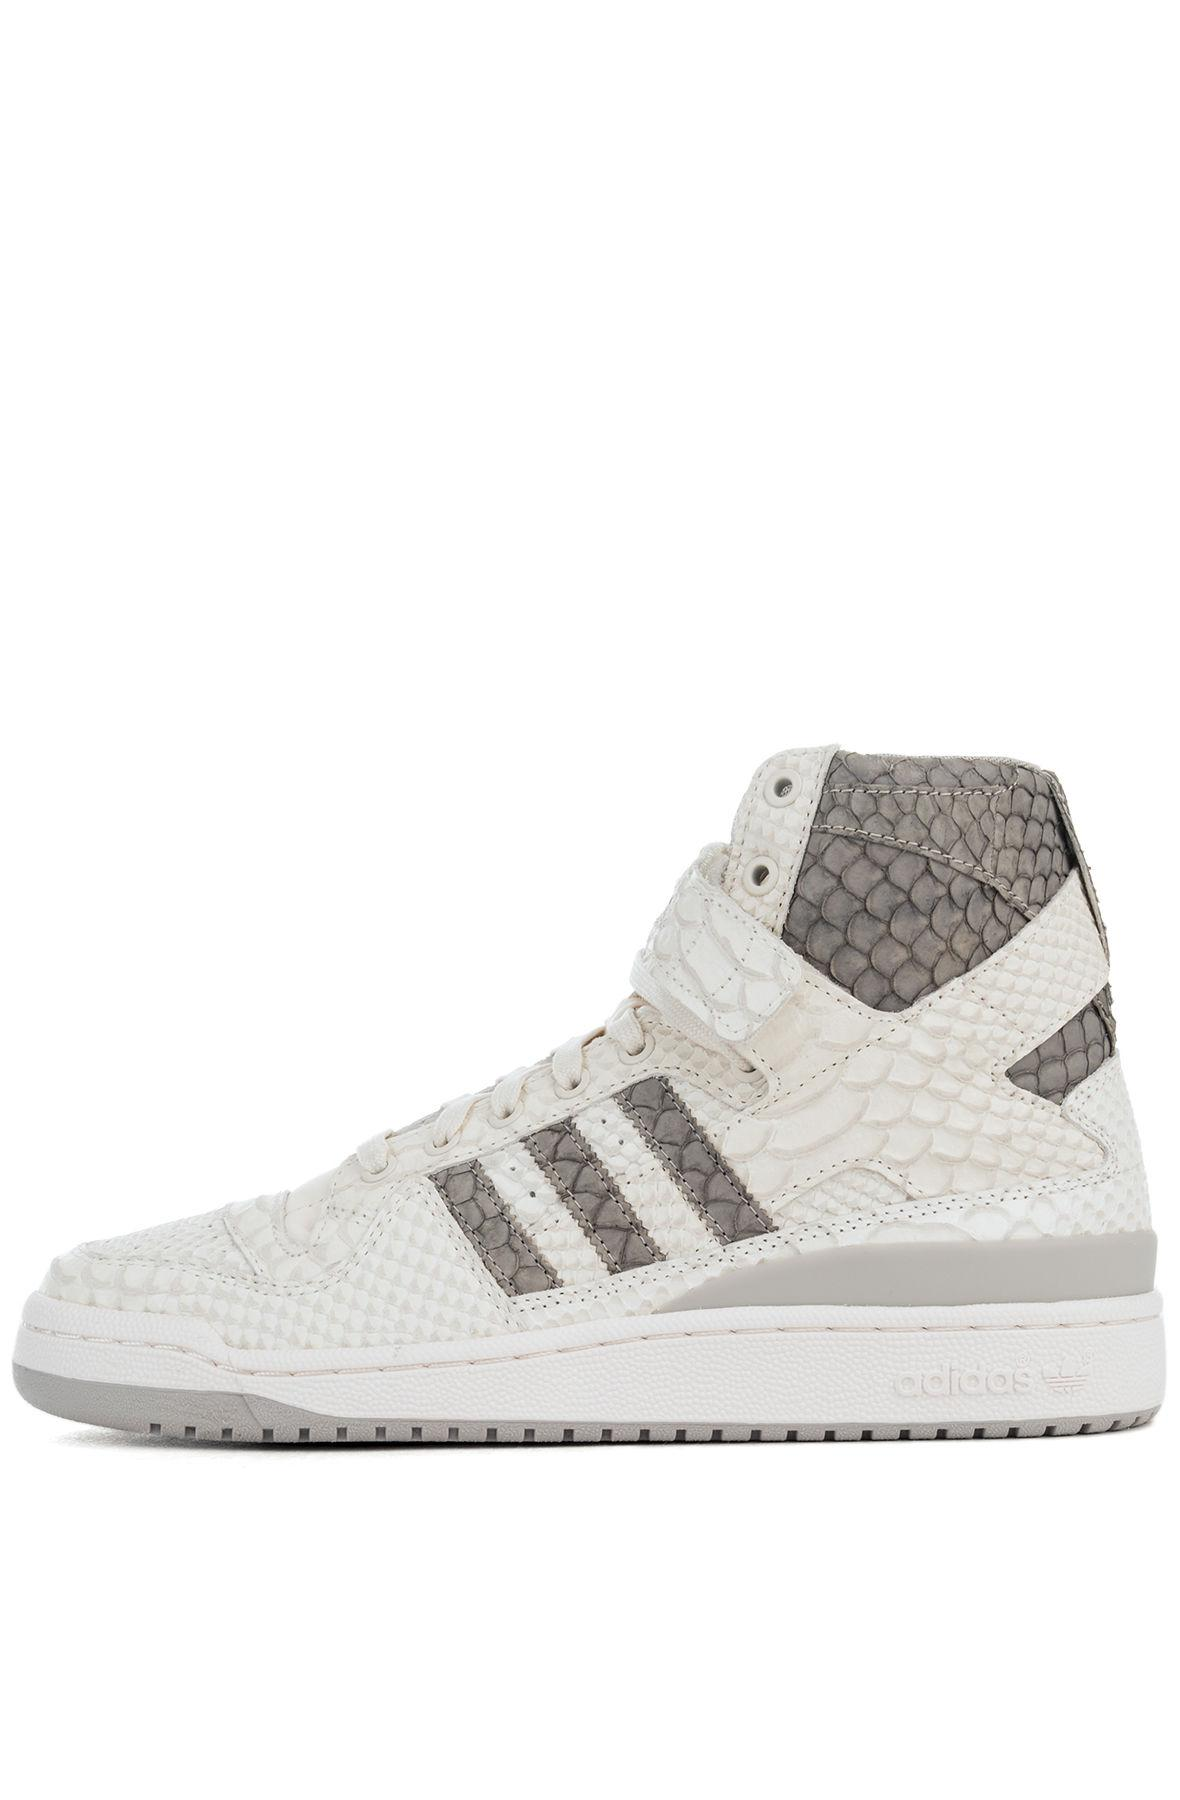 los angeles 71d32 fe755 Lyst - Adidas Originals The Forum Hi Og in White for Men